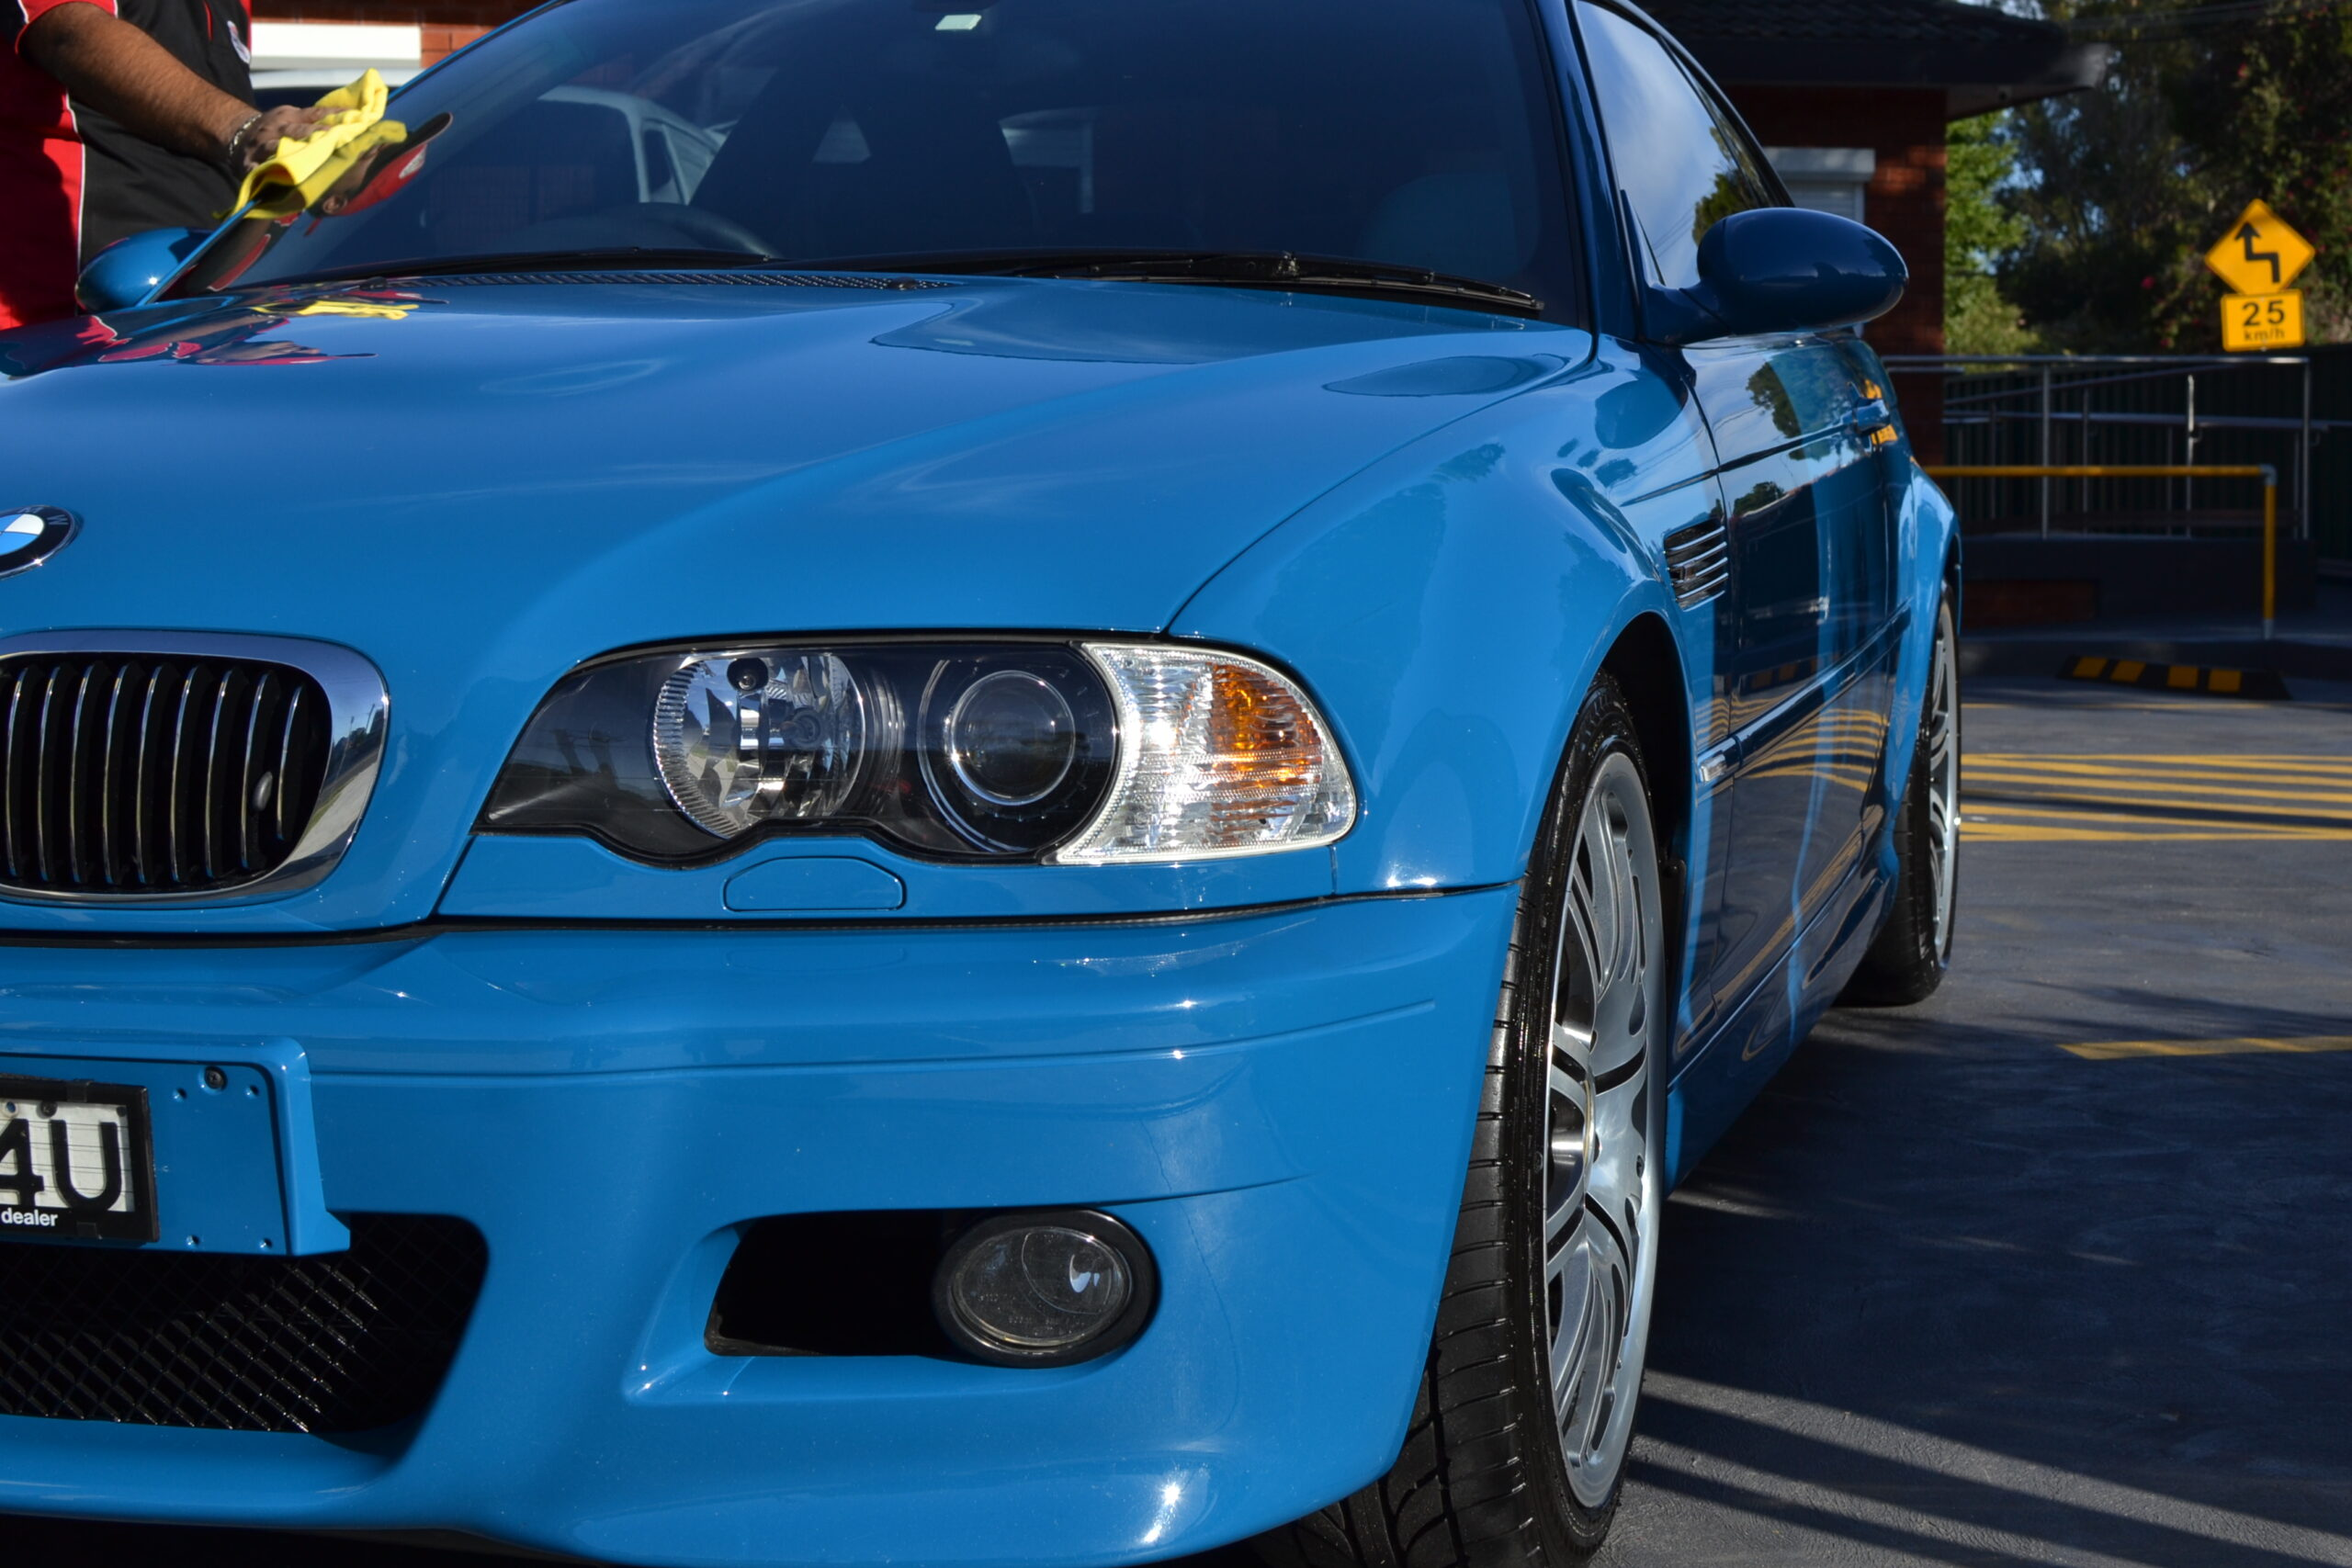 What Are the Advantages of Ceramic Coating Near Me?